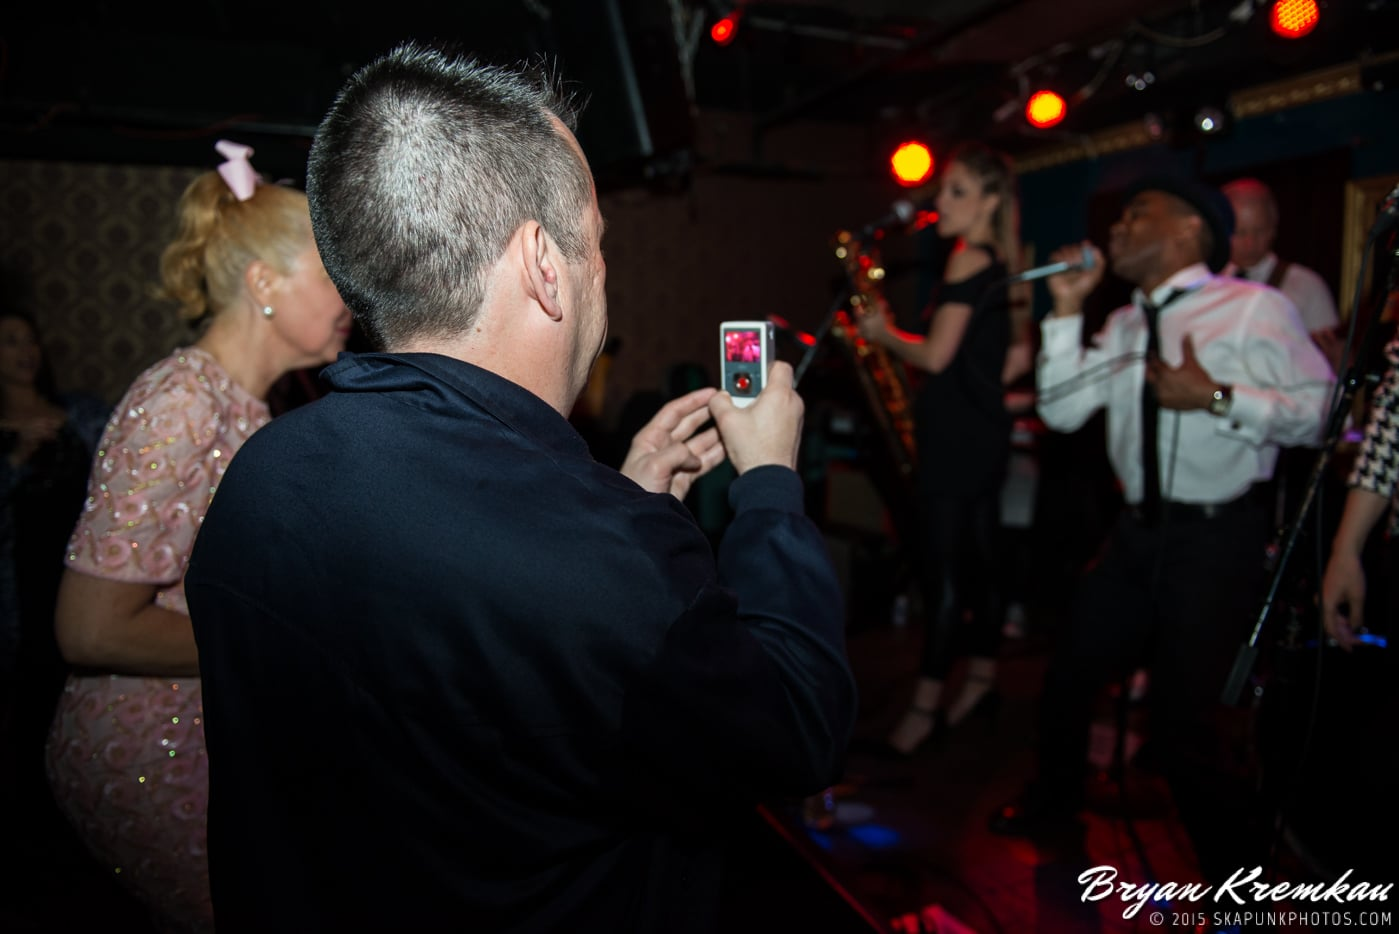 Rude Boy George @ Fontana's, NYC - 4.25.15 - Photo by Bryan Kremkau (8)